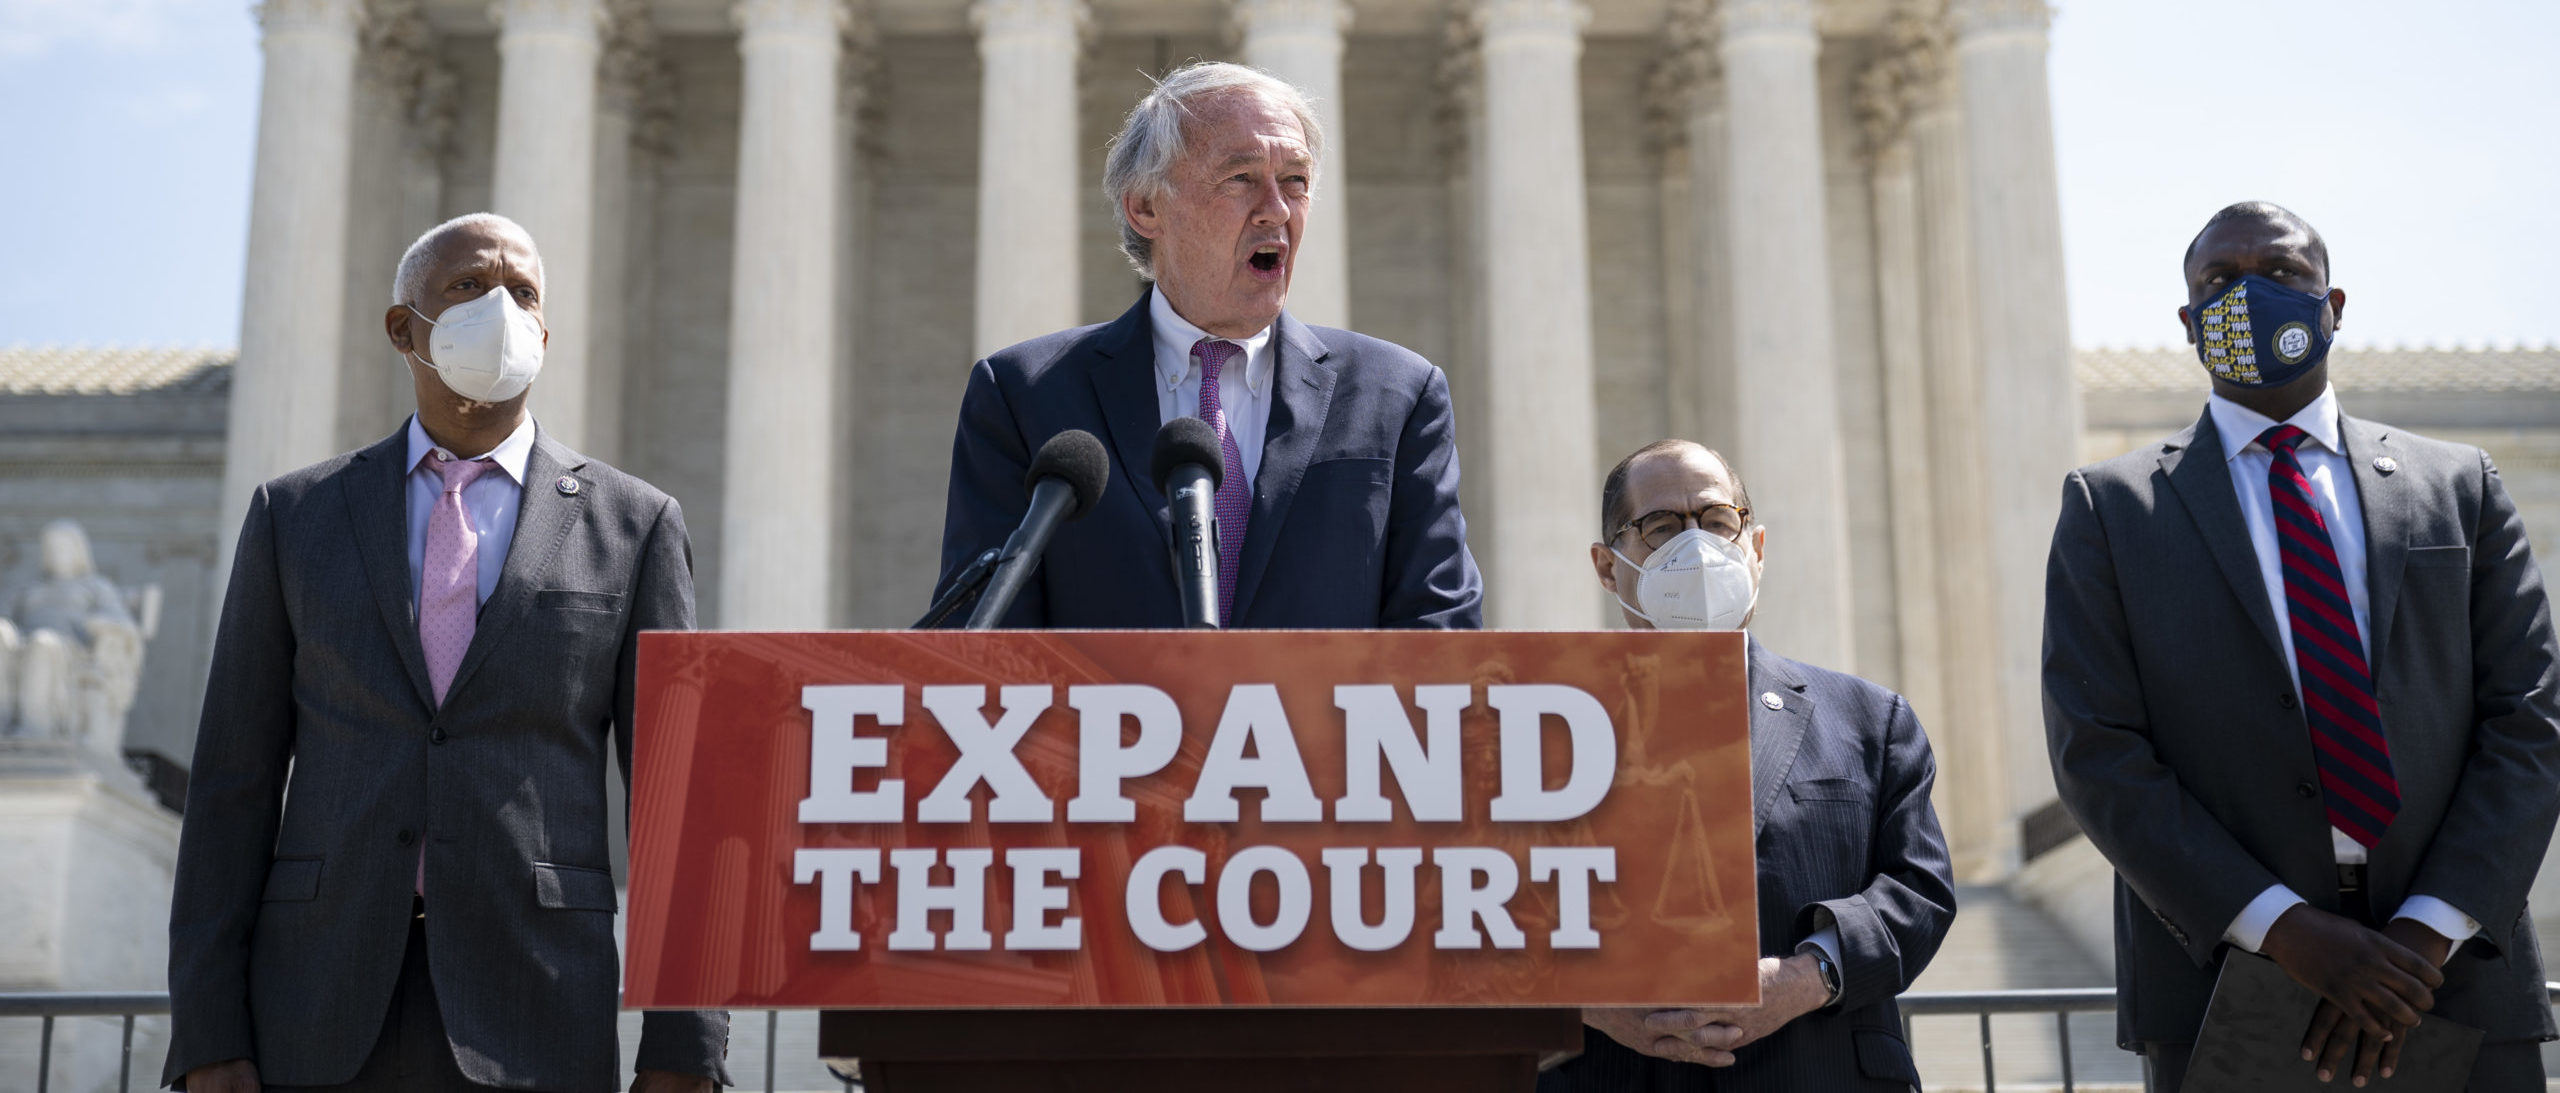 WASHINGTON, DC - APRIL 15: (L-R) Rep. Hank Johnson (D-GA), Sen. Ed Markey (D-MA), House Judiciary Committee Chairman Rep. Jerrold Nadler (D-NY) and Rep. Mondaire Jones (D-NY) hold a press conference in front of the U.S. Supreme Court to announce legislation to expand the number of seats on the Supreme Court on April 15, 2021 in Washington, DC. Their bill would expand the Supreme Court from 9 to 13 justices. Speaker of the House Nancy Pelosi says she does not support the bill and doesn't plan to bring it to the House floor. (Photo by Drew Angerer/Getty Images)